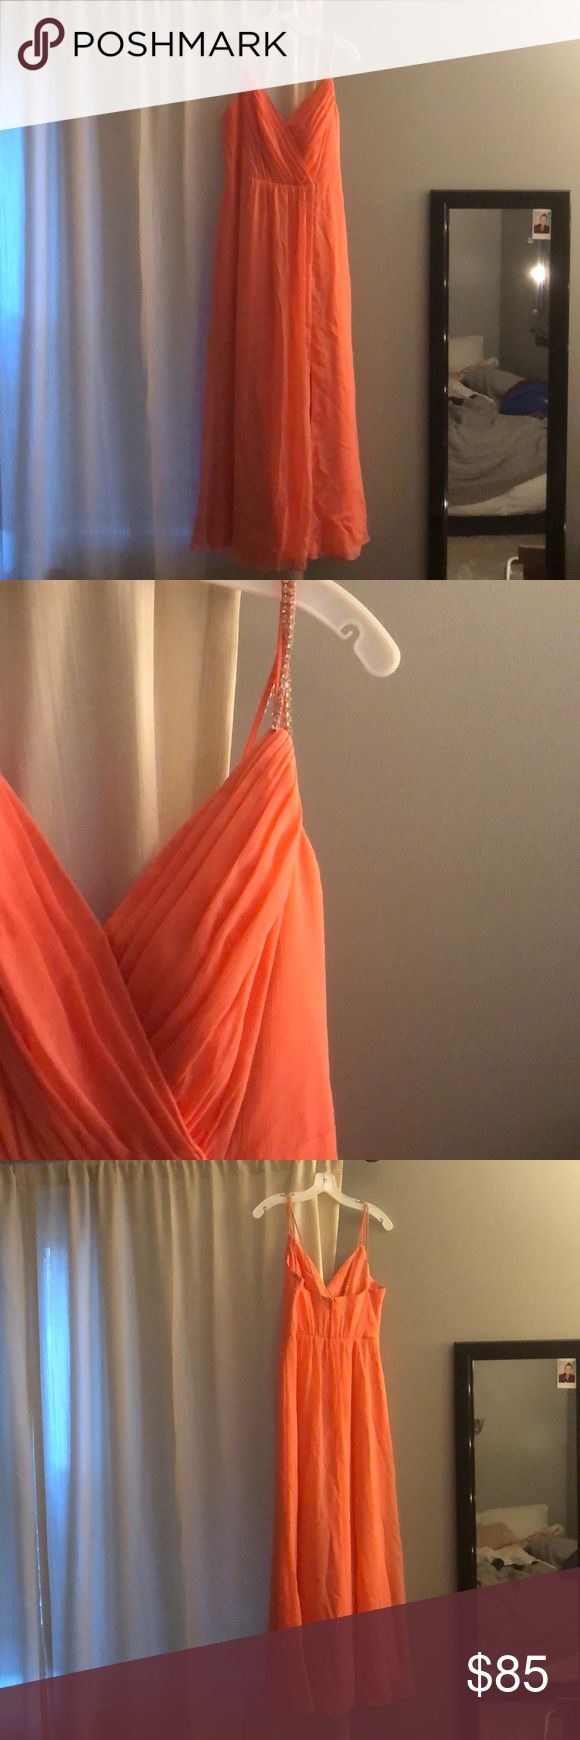 Formal/bridesmaid dress Long coral dress, sequined skinny strips. Hemmed for height 5'4 David's Bridal Dresses Wedding